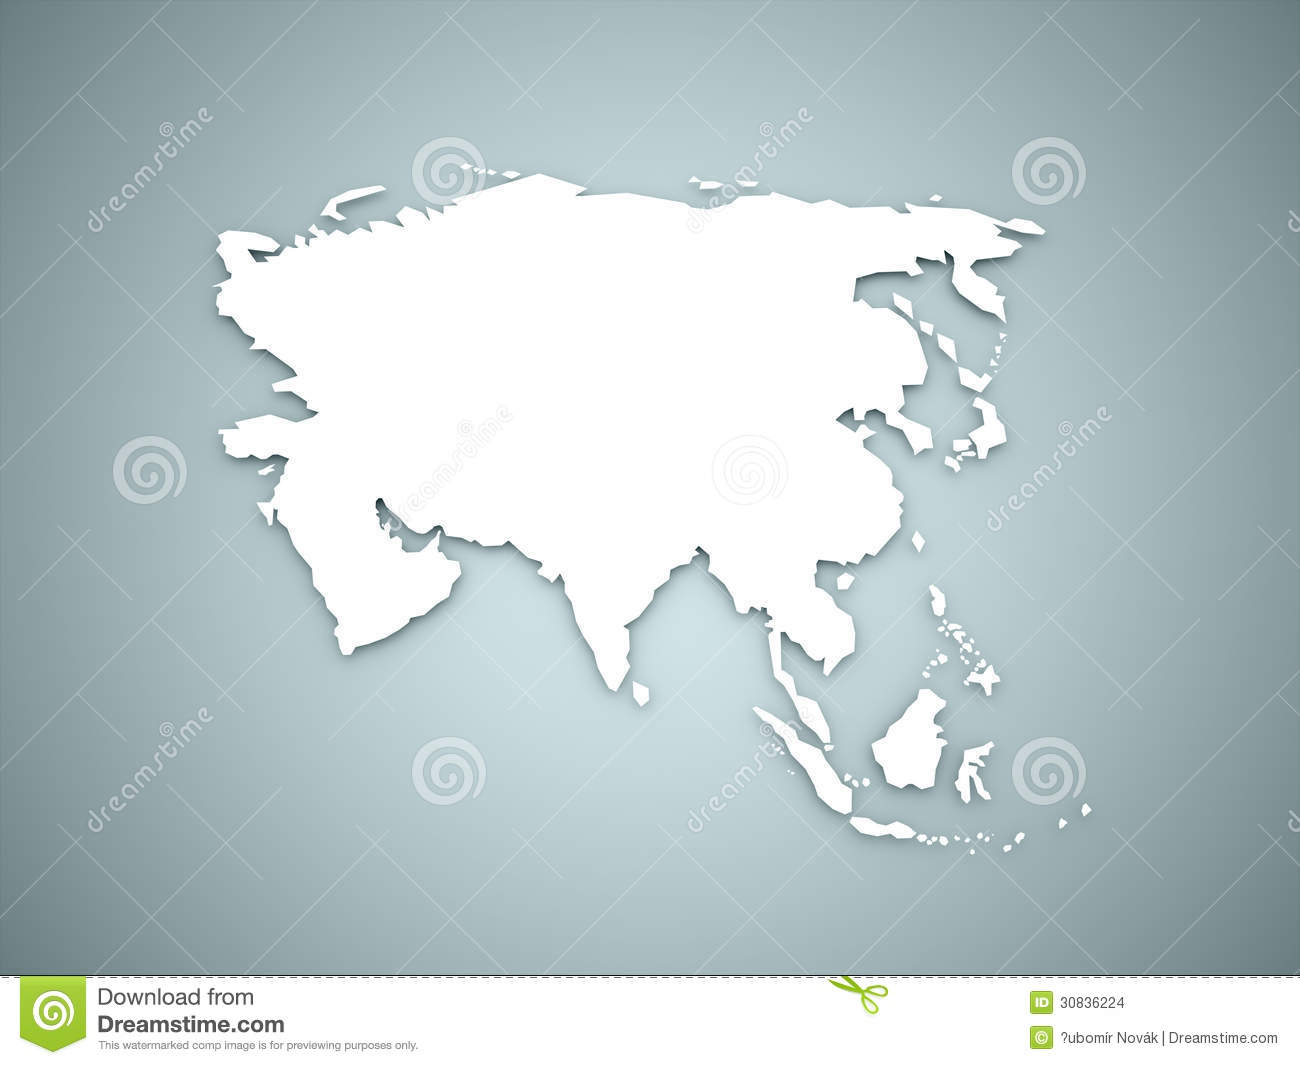 The Continent Of Asia Map.Continent Asia Map